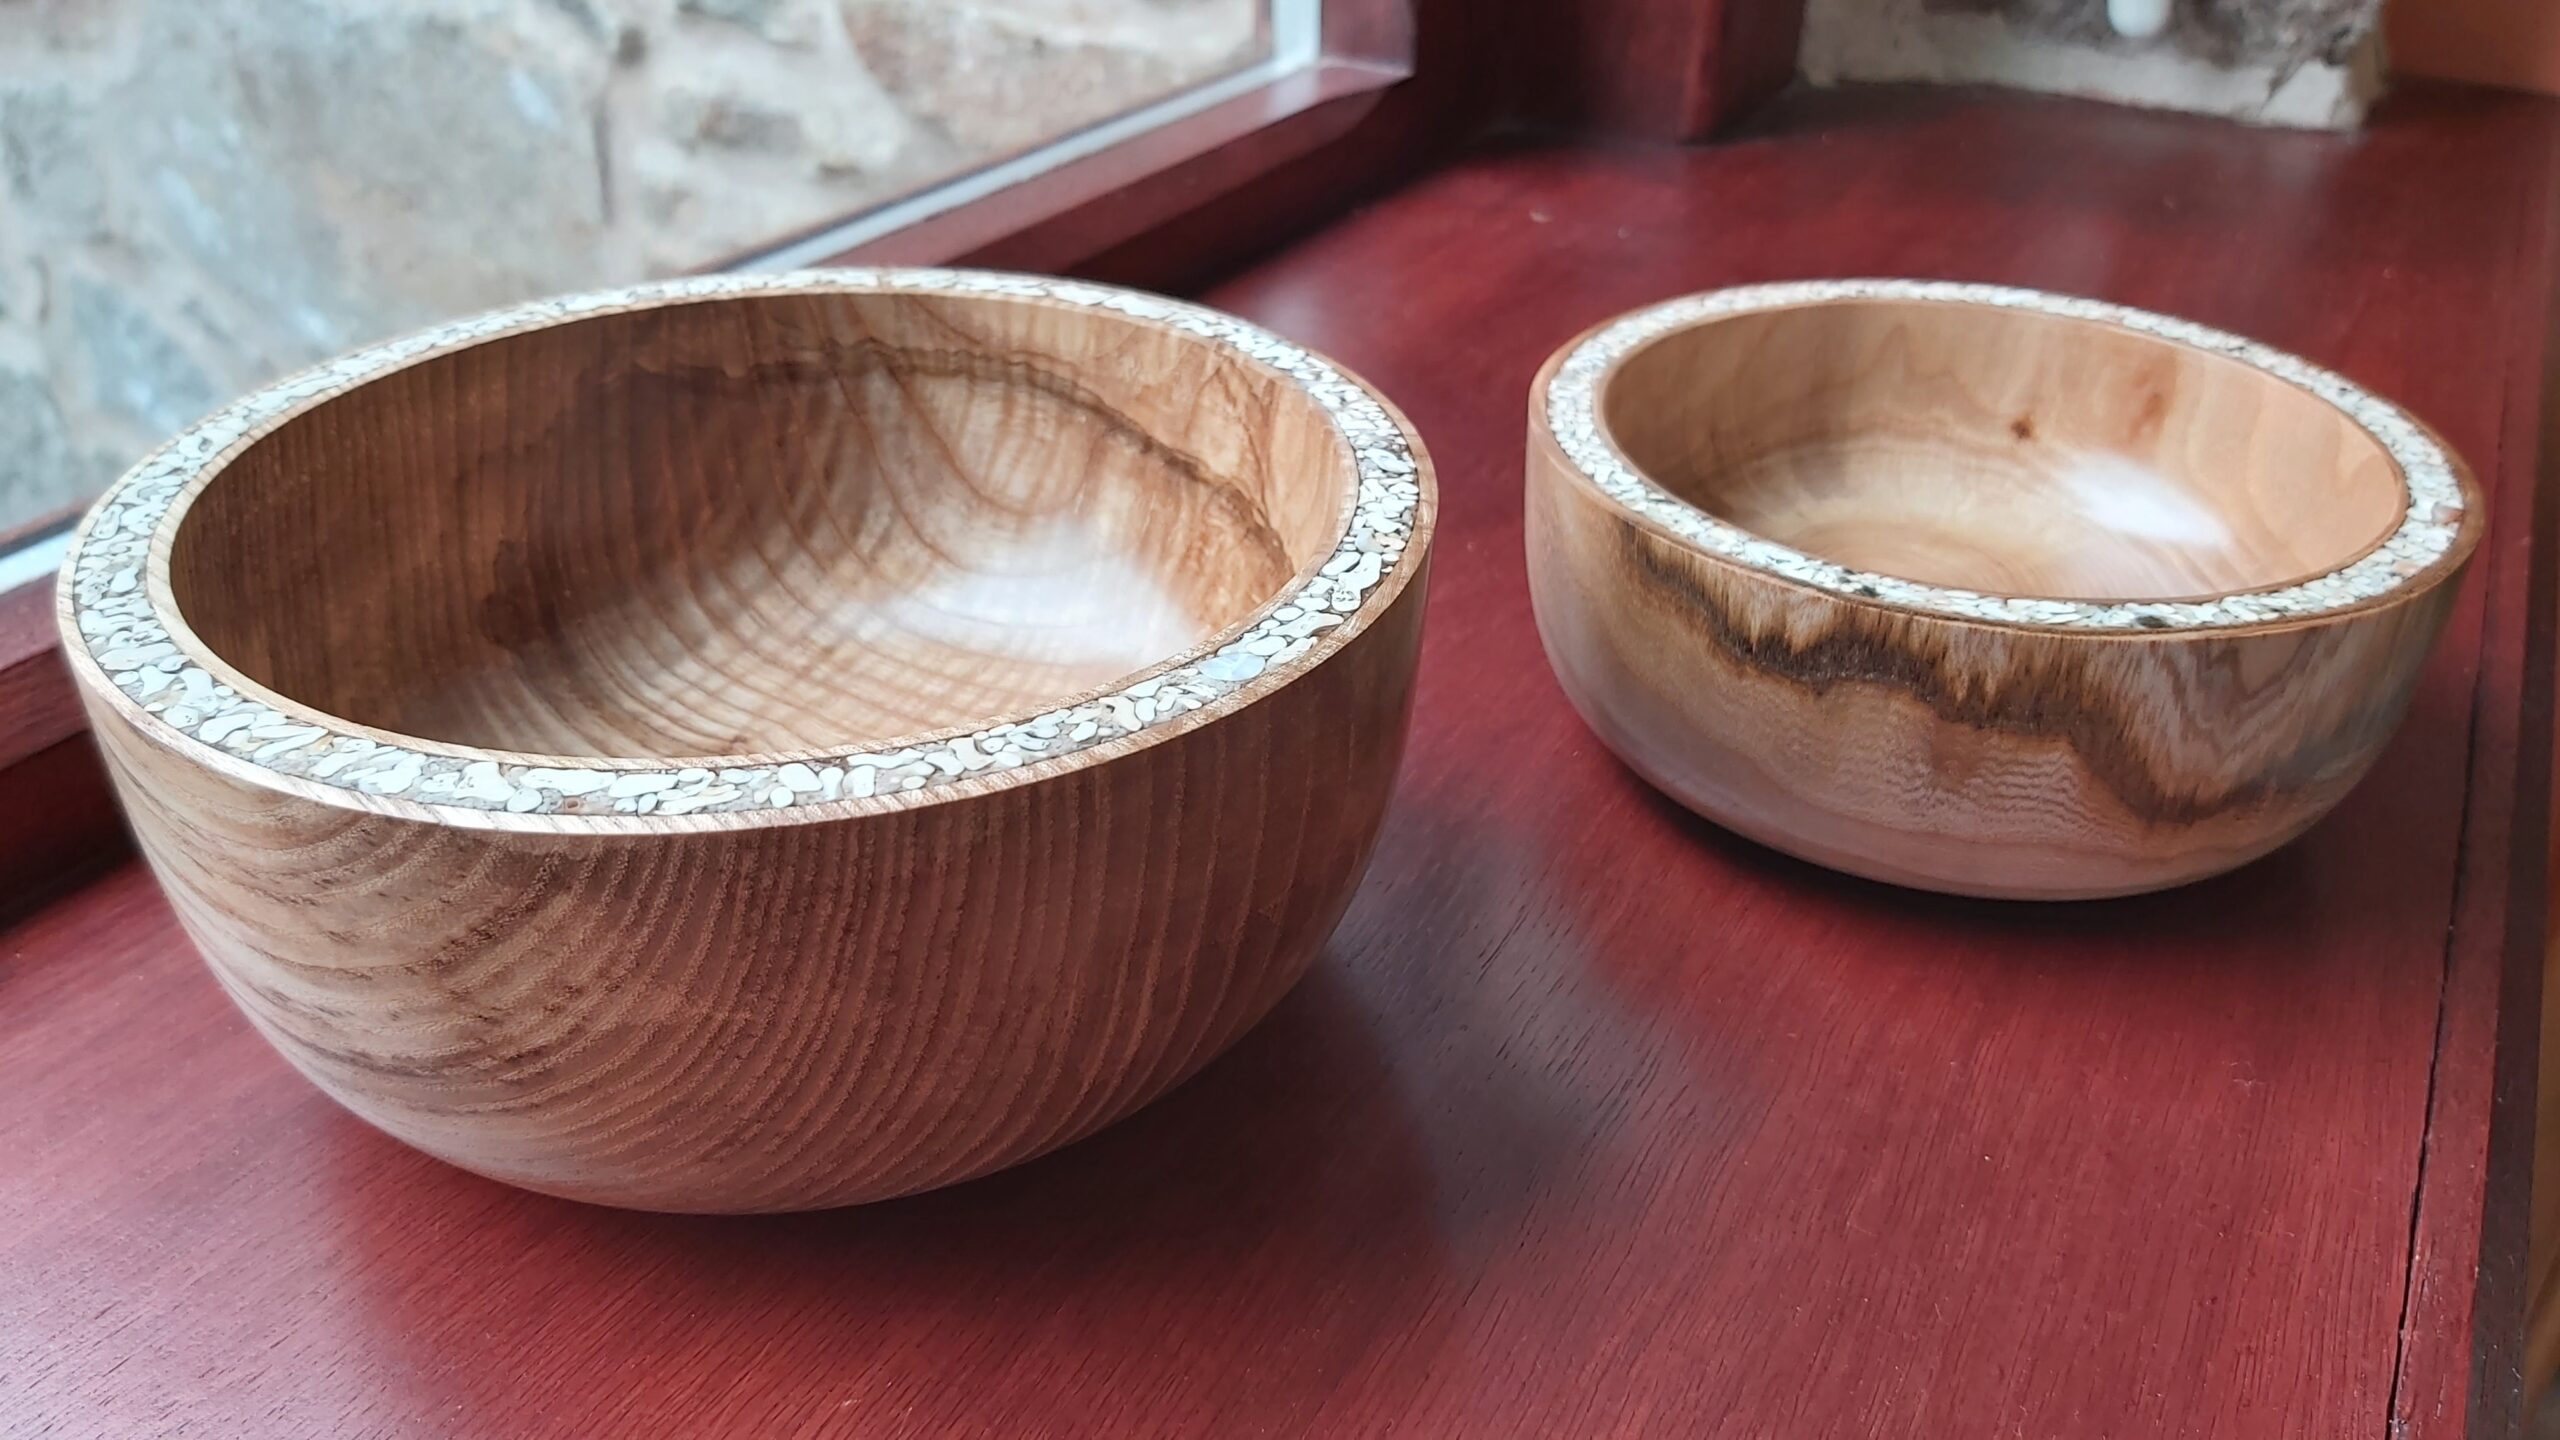 Aden Allotments Wood turned bowls